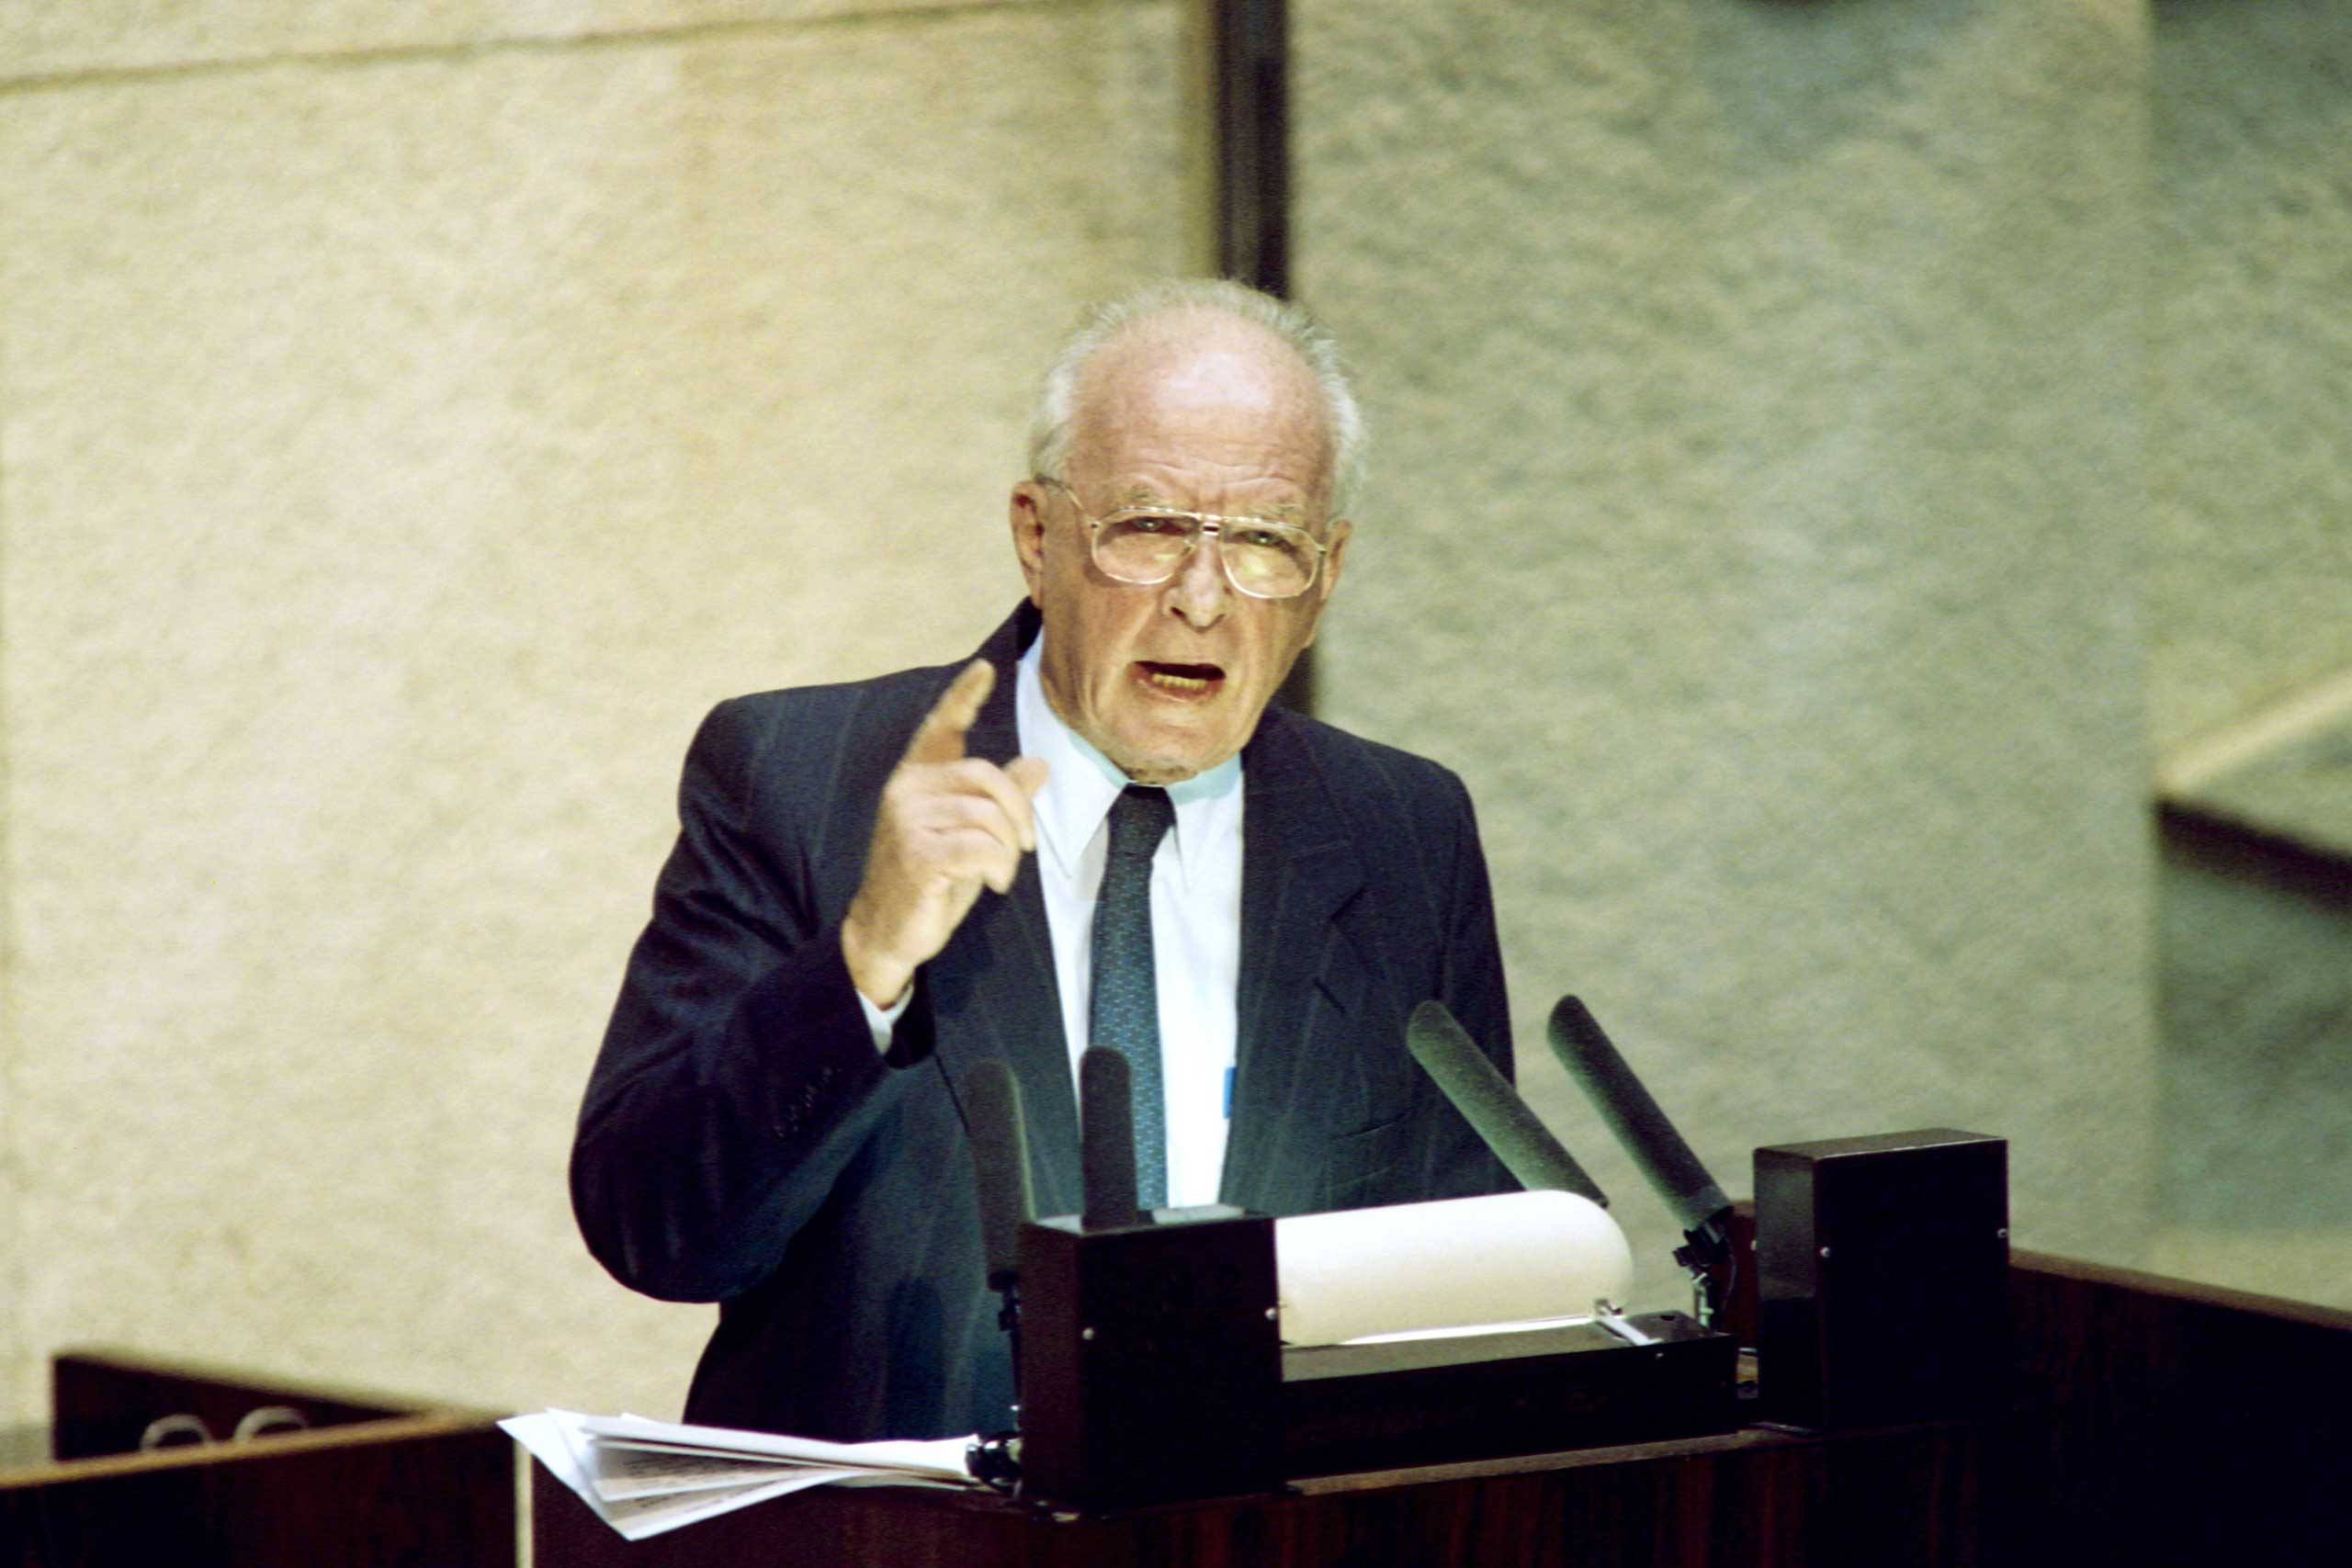 """<b>Yitzhak Rabin, 1994</b>""""To honour a political act which called for great courage on both sides, and which has opened up opportunities for a new development towards fraternity in the Middle East"""""""